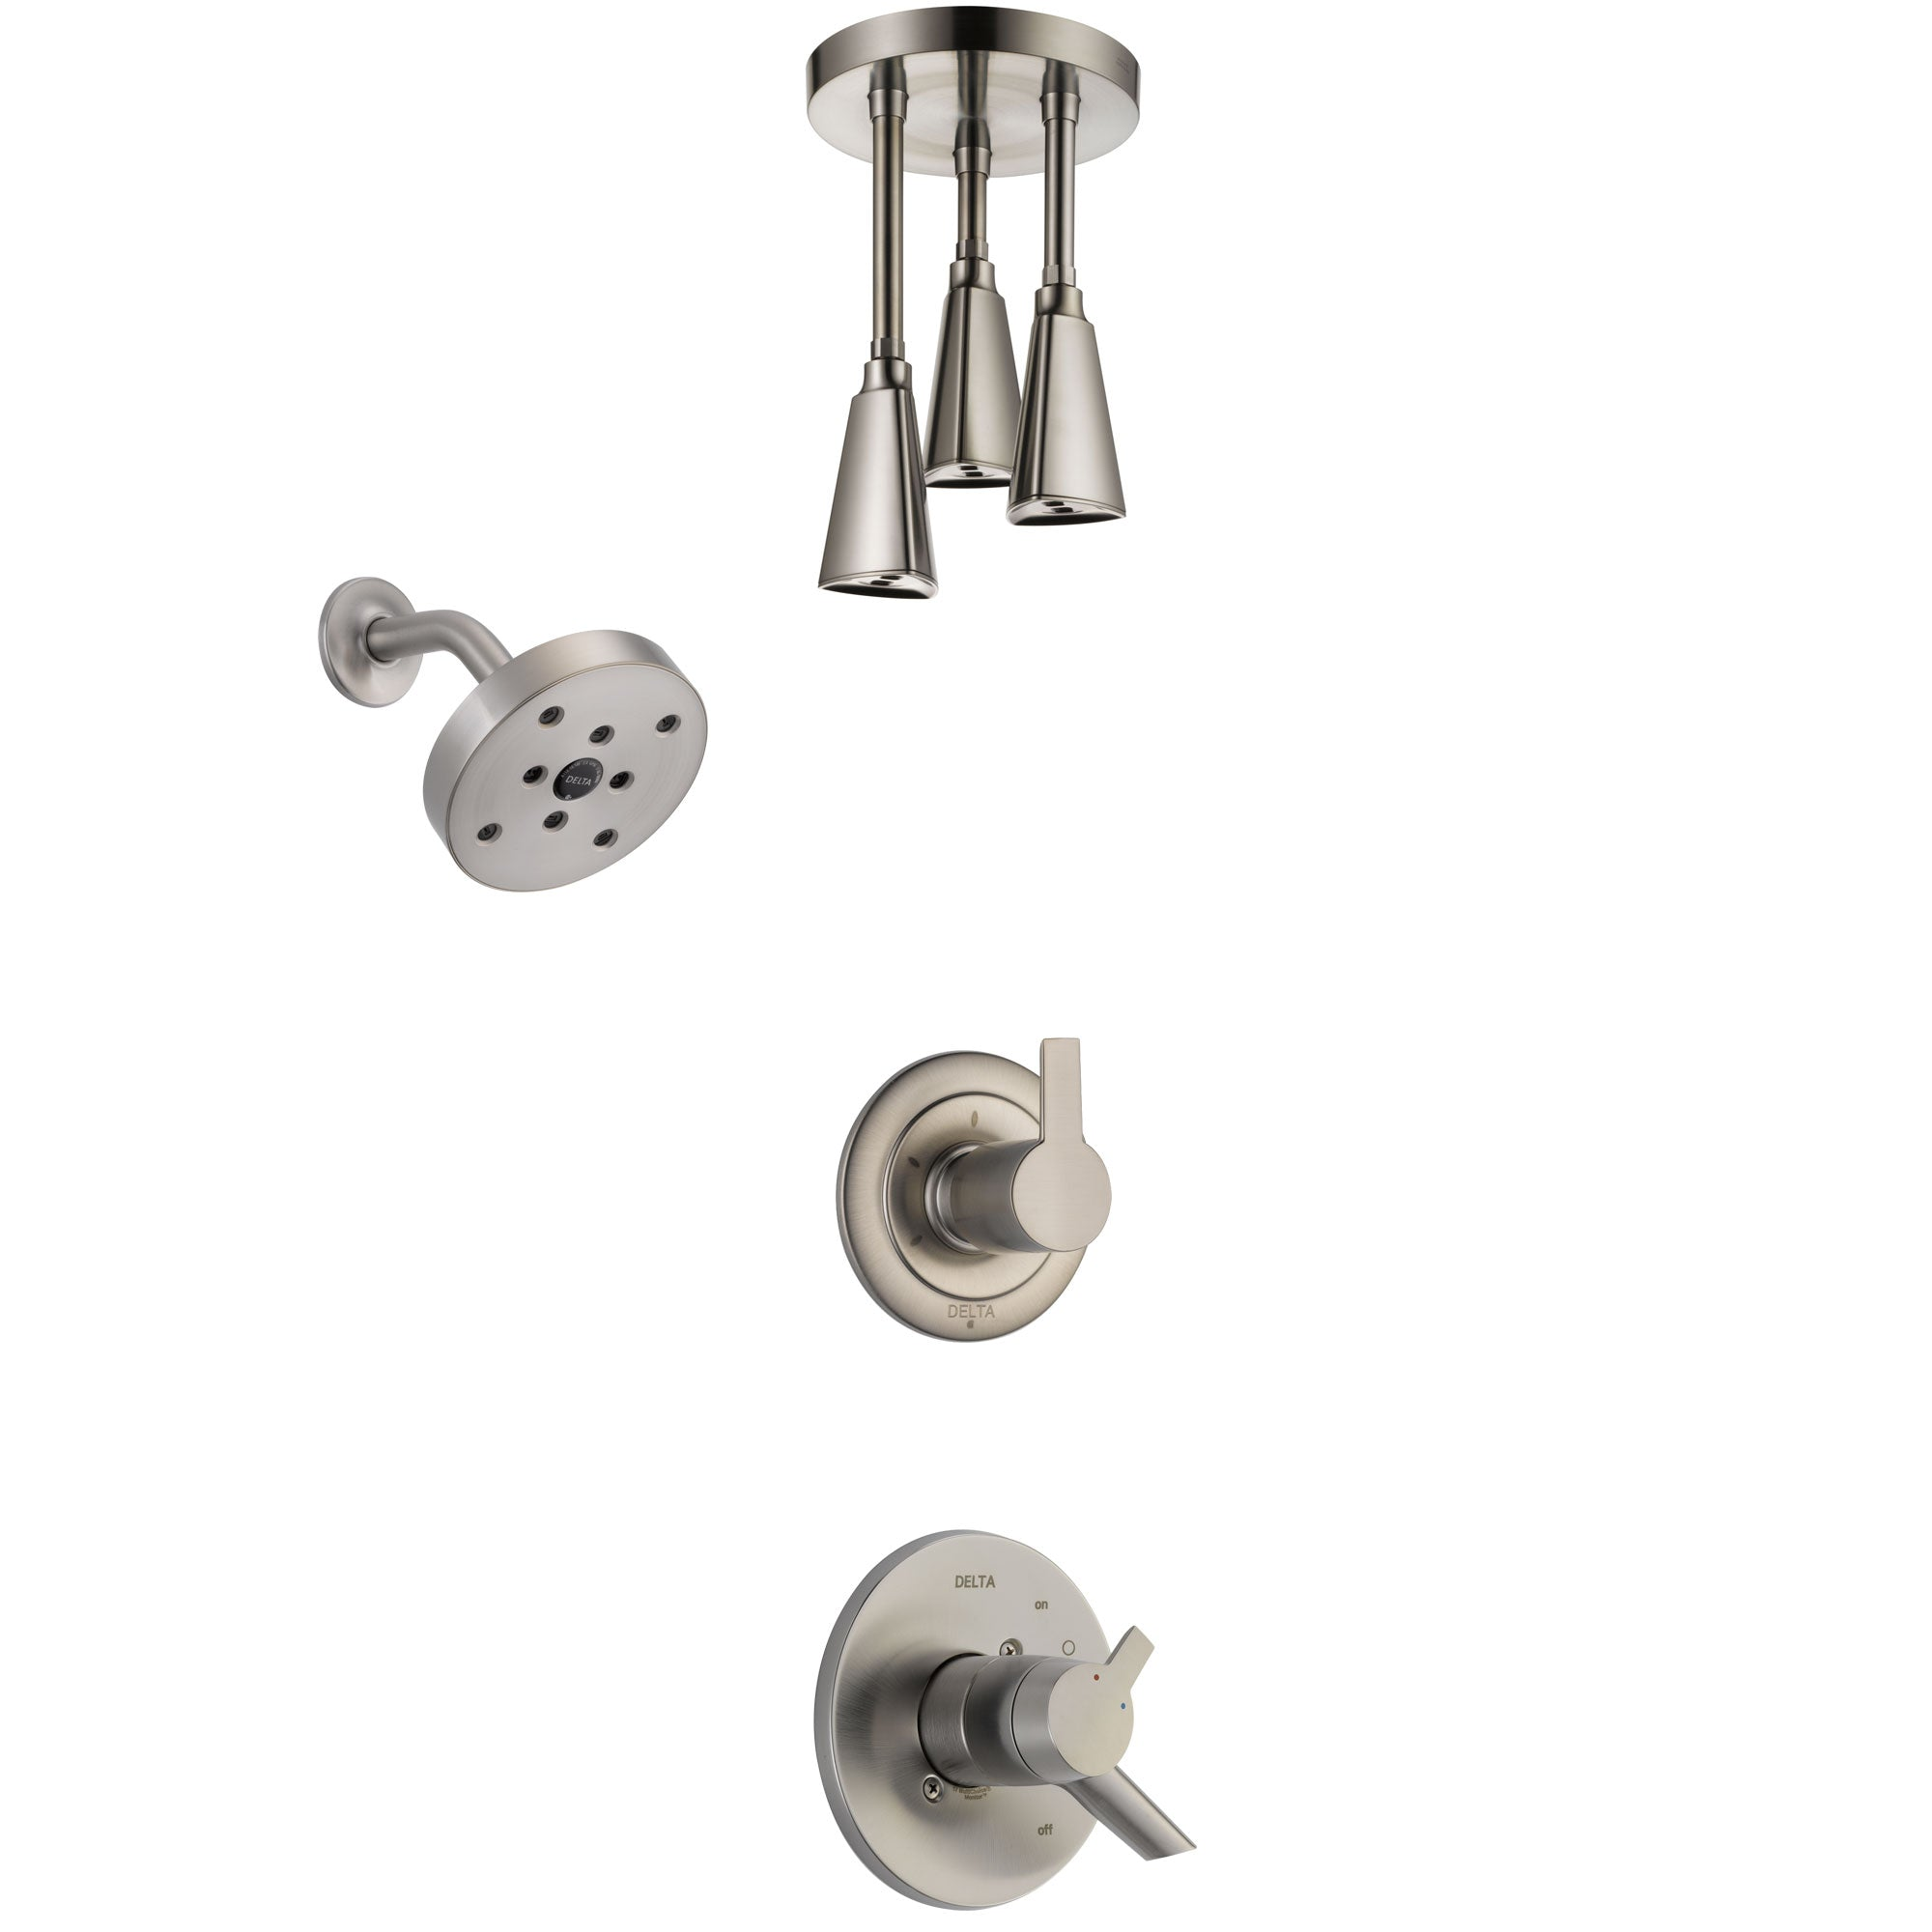 Delta Compel Stainless Steel Finish Shower System with Dual Control Handle, 3-Setting Diverter, Showerhead, and Ceiling Mount Showerhead SS17261SS6